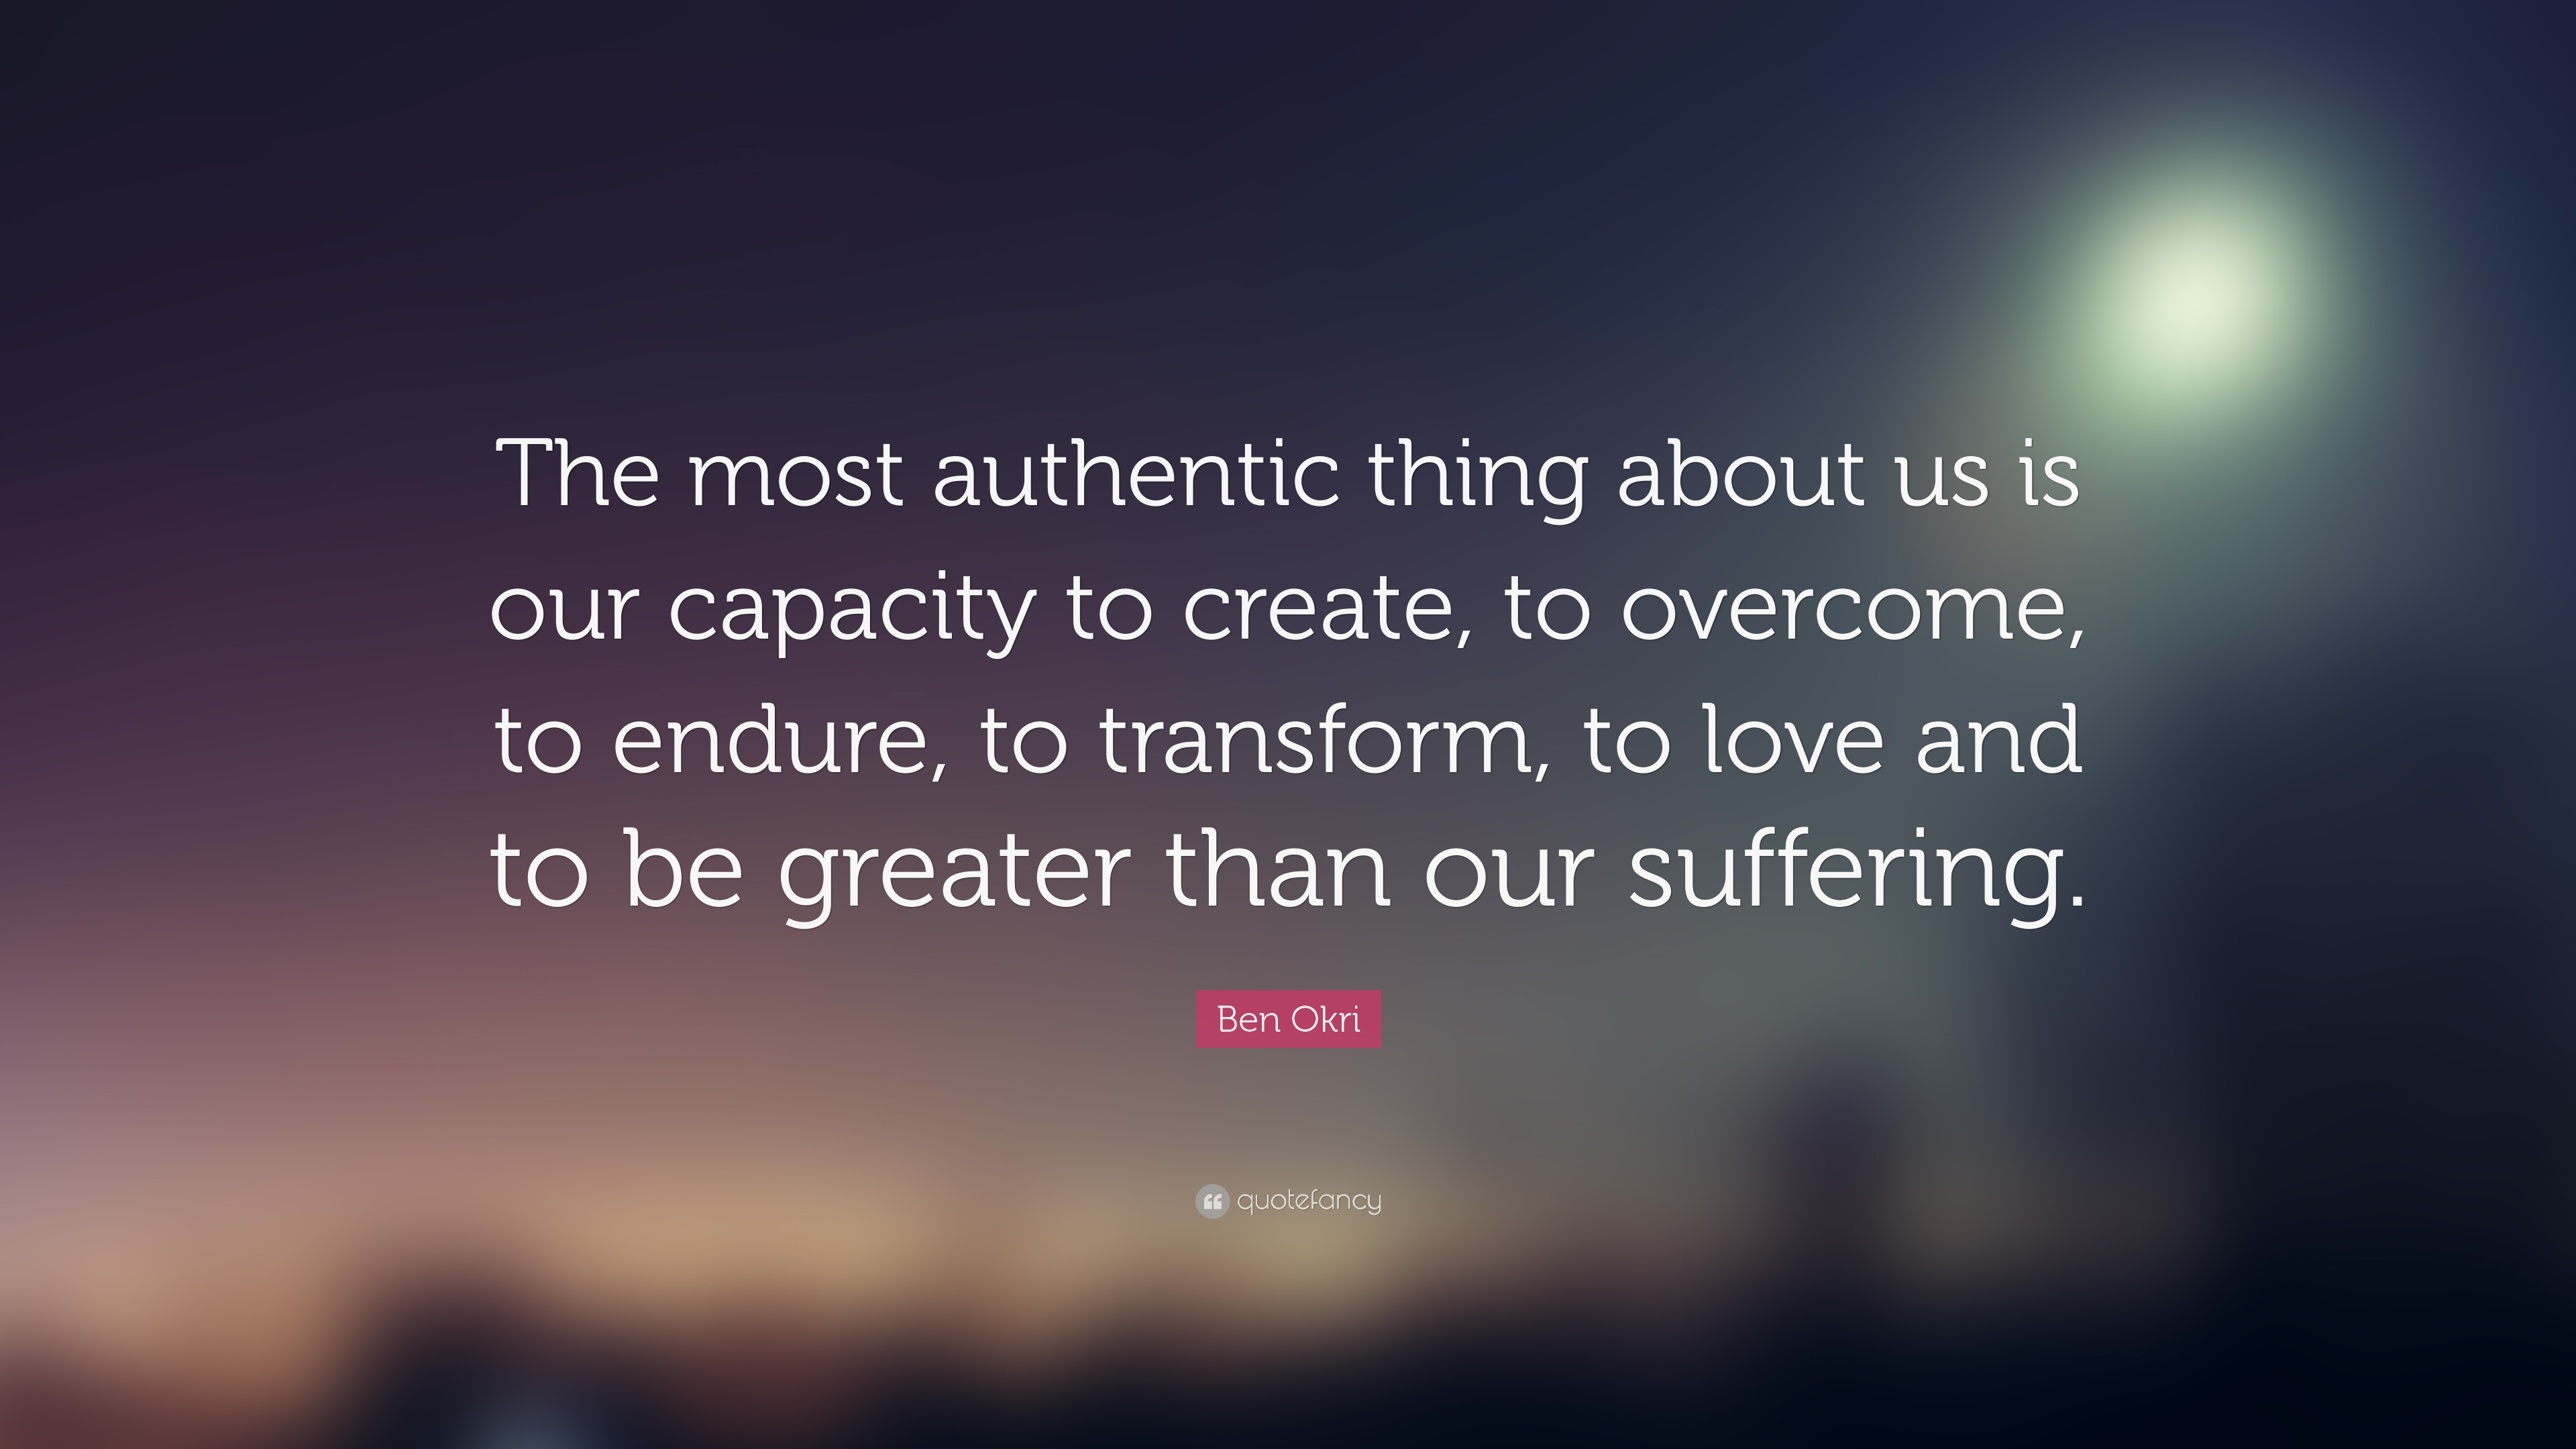 Attrayant Ben Okri Quote: U201cThe Most Authentic Thing About Us Is Our Capacity To Create